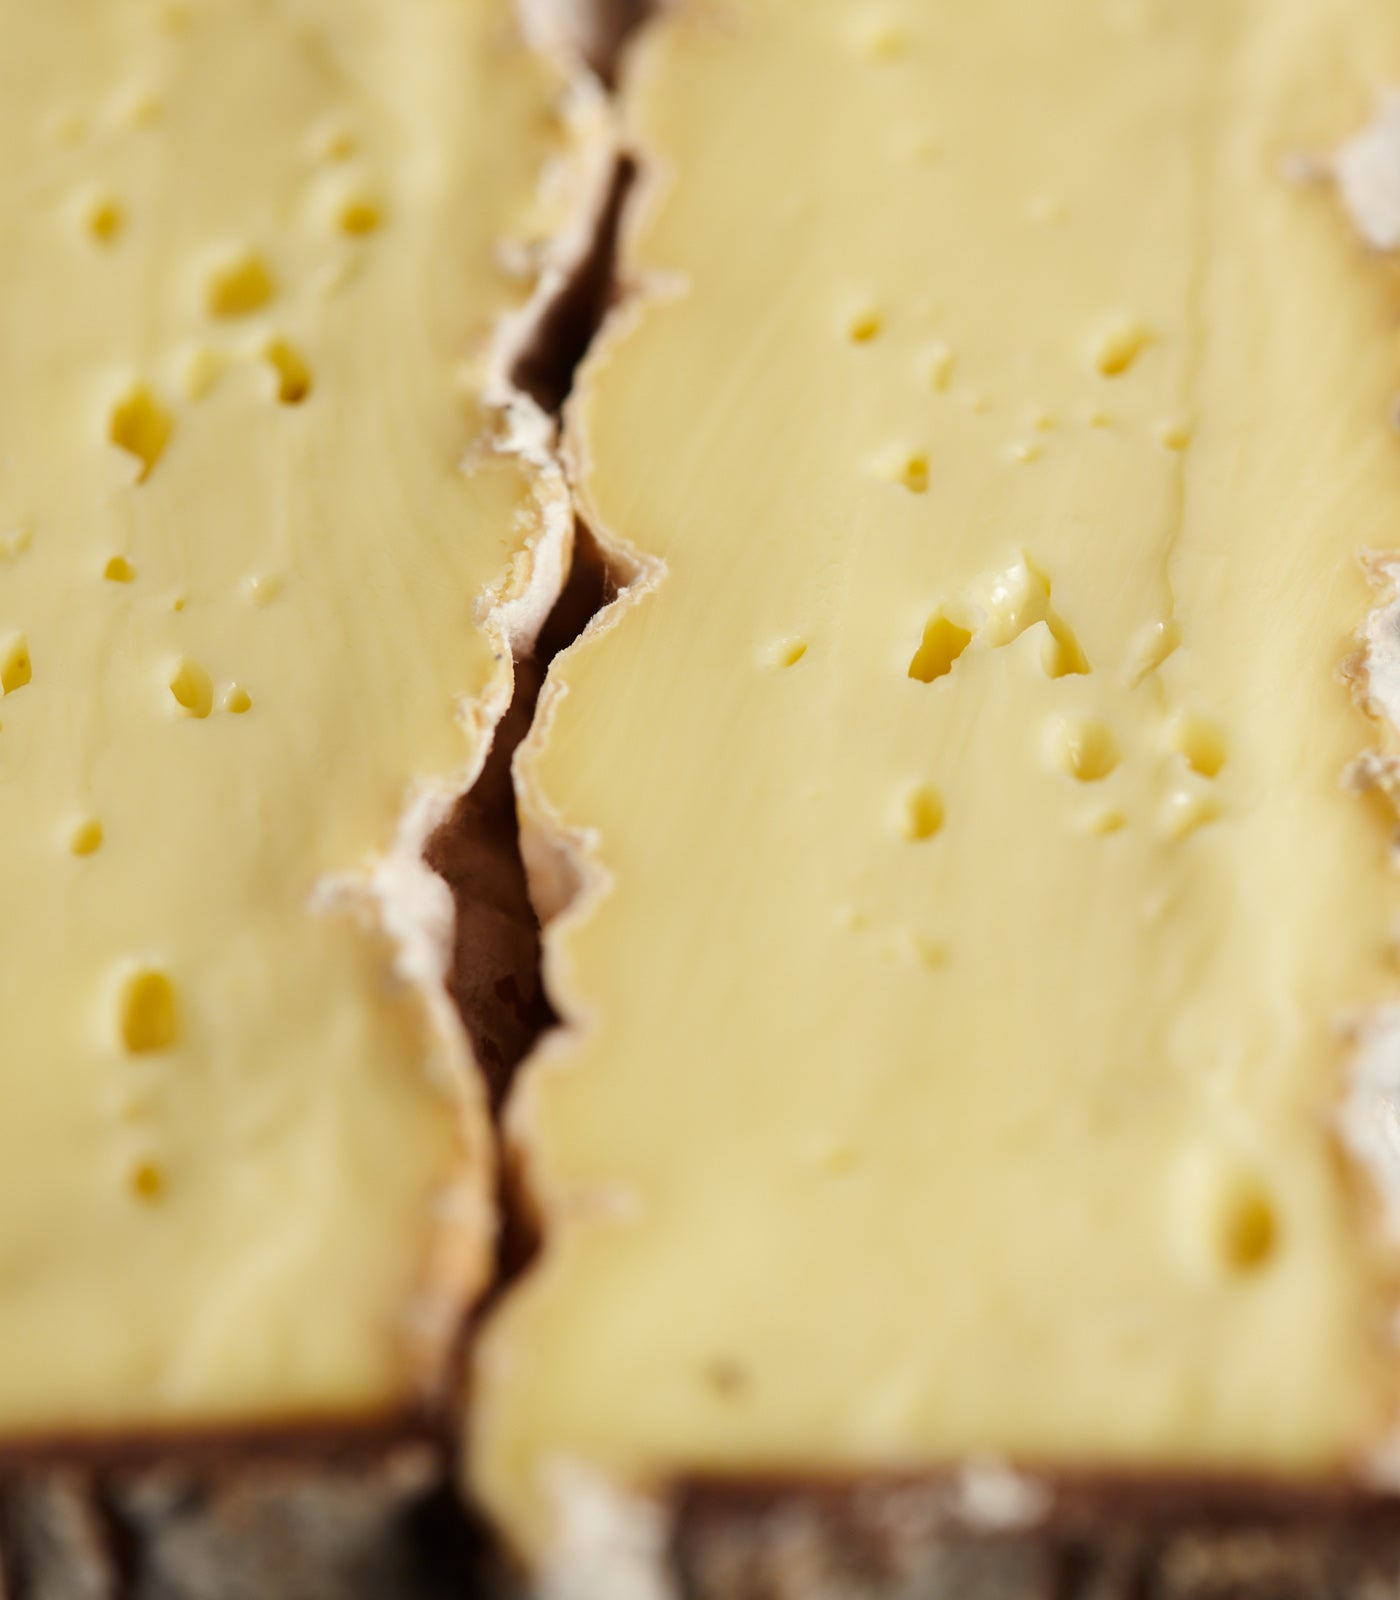 Close up of a cut, washed rind Little Rollright cow's milk cheese showing the soft creamy paste